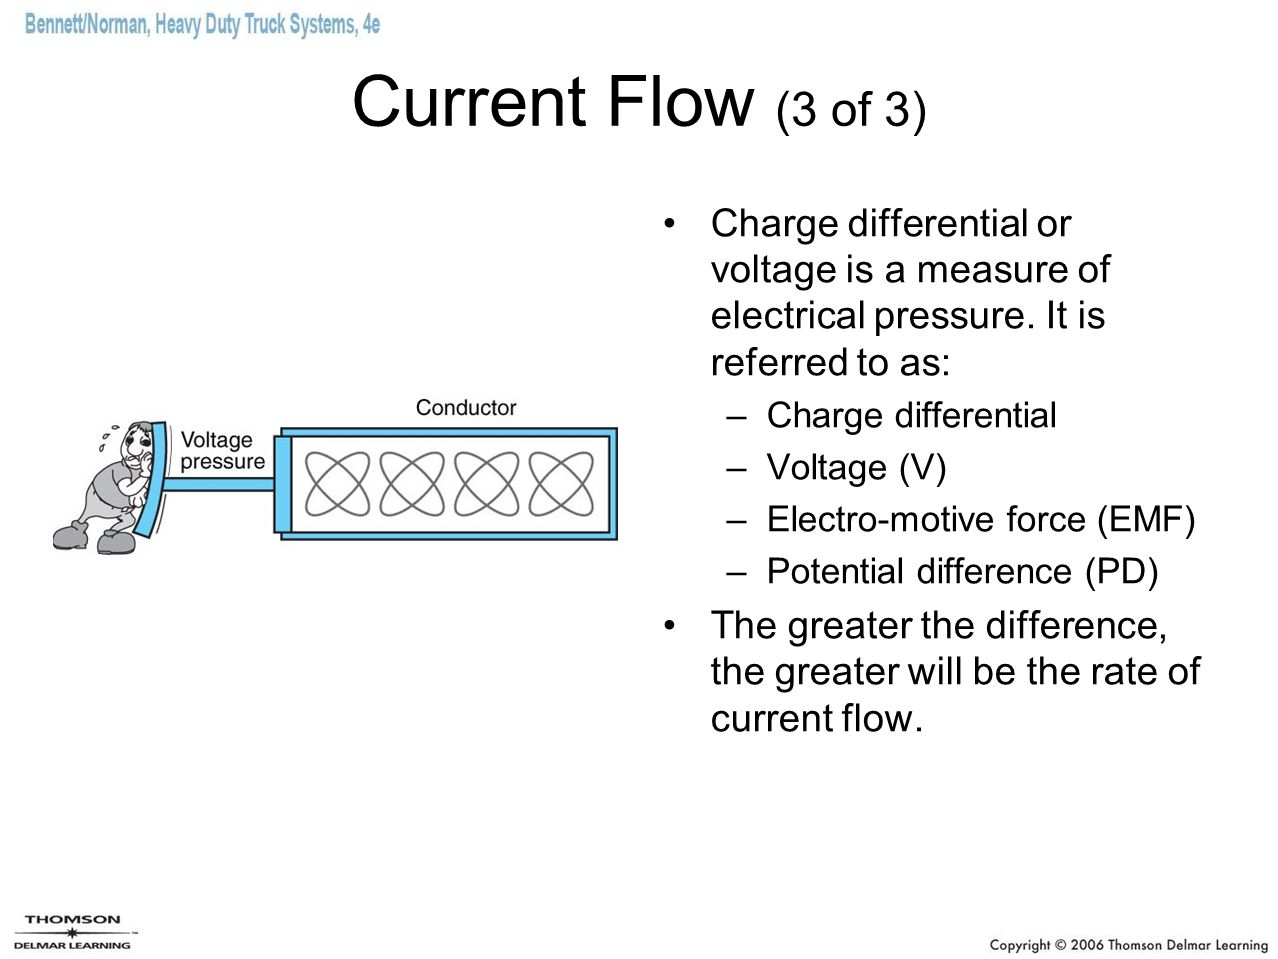 Current Flow (3 of 3) Charge differential or voltage is a measure of electrical pressure. It is referred to as: